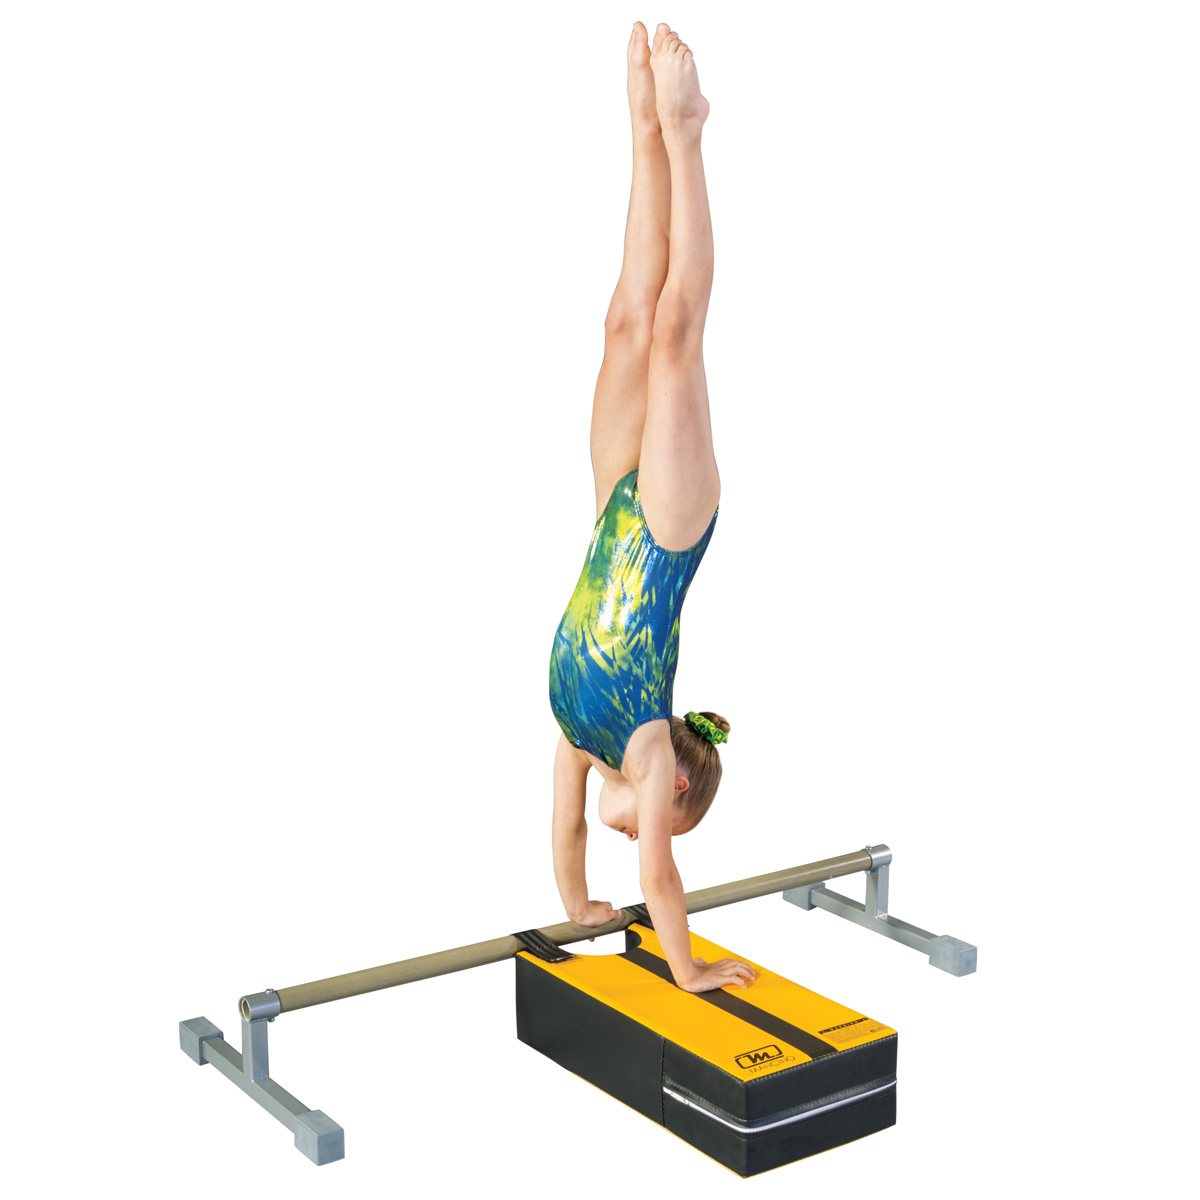 Pirouette Trainer Mat floor bar and gymnast